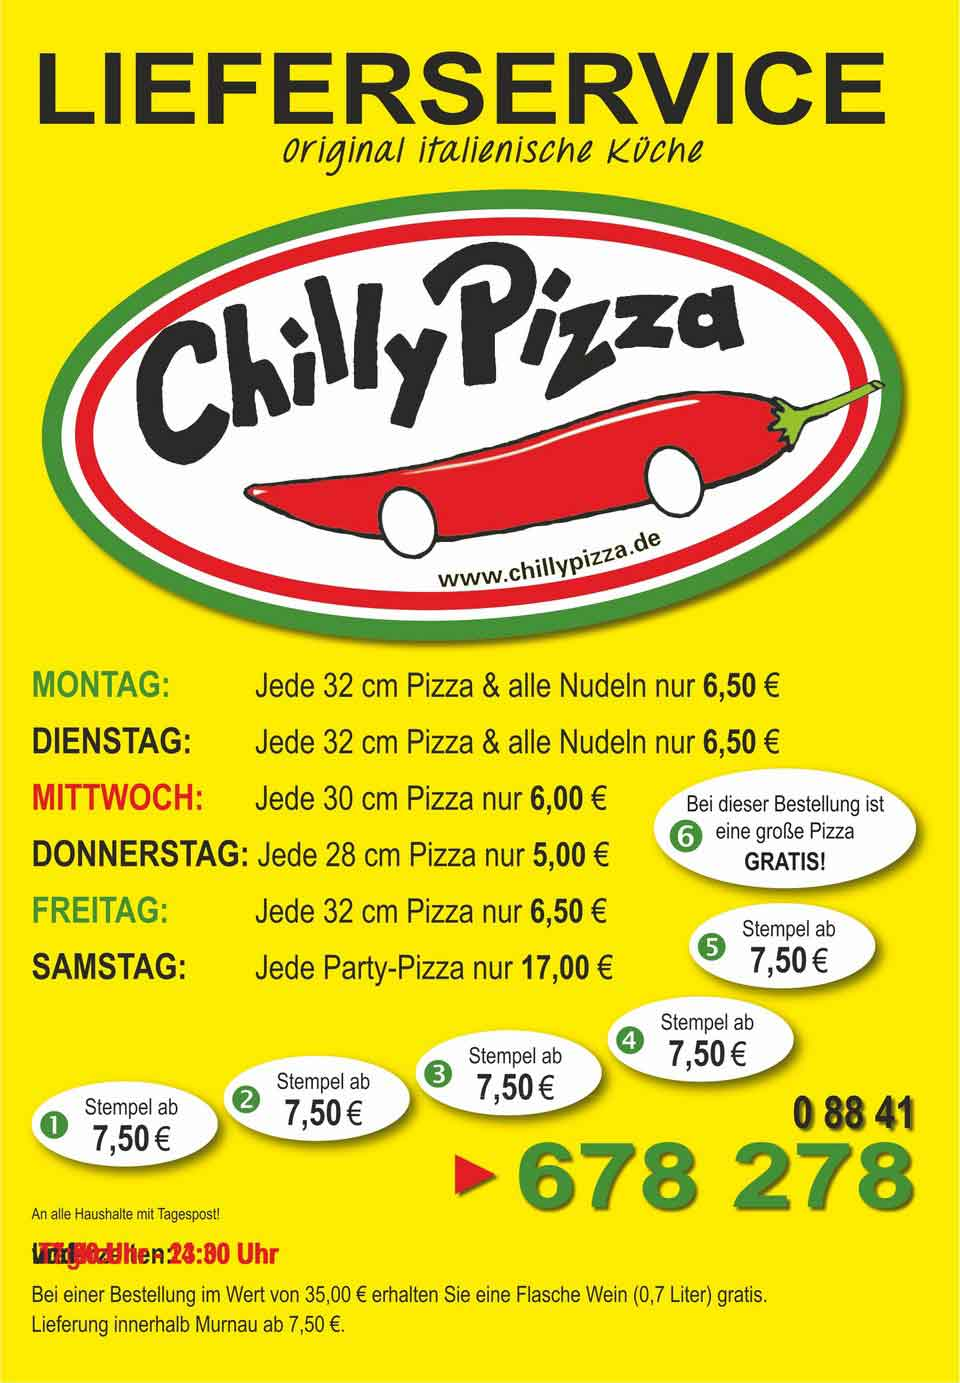 Chilly Pizza Lieferservice